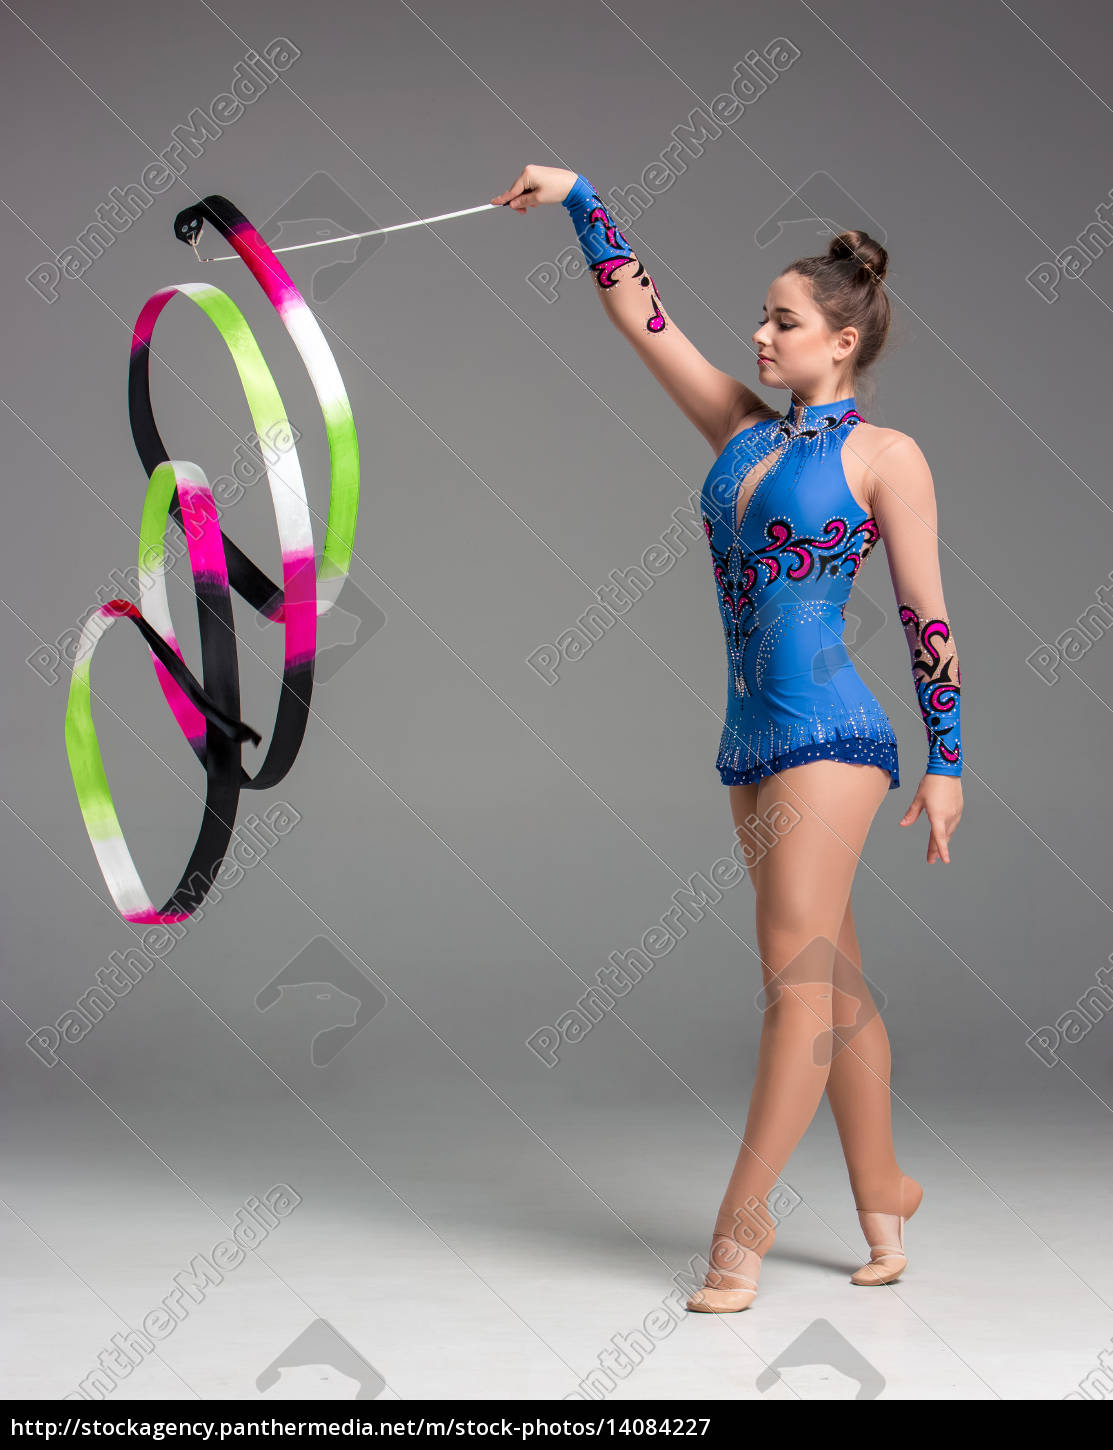 teenager, doing, gymnastics, dance, with, ribbon - 14084227